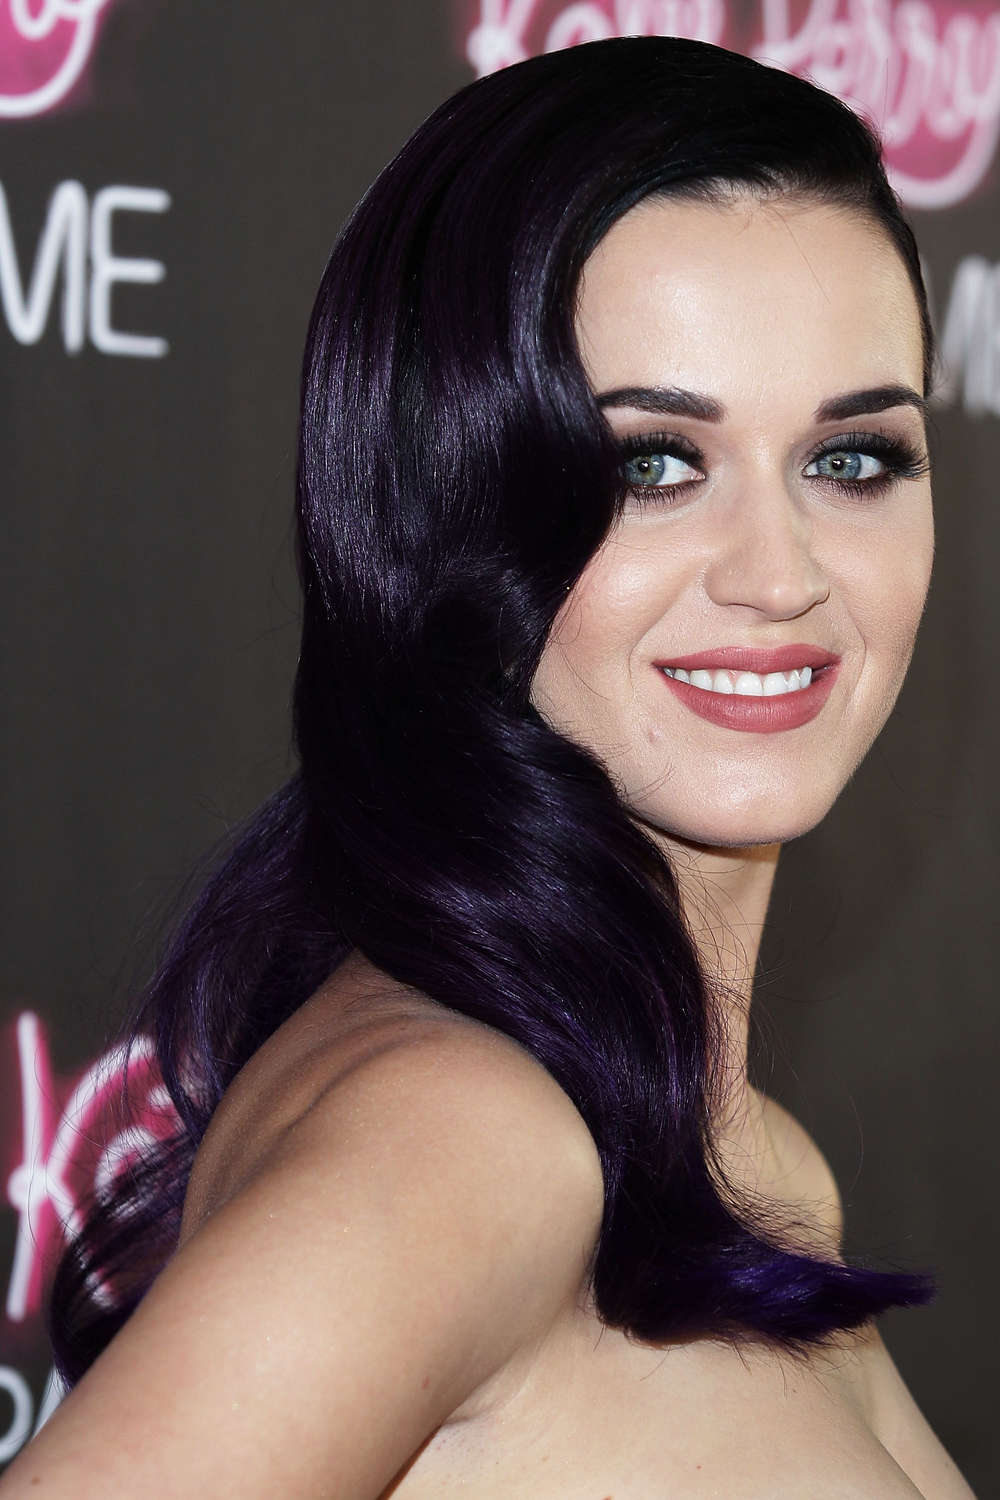 Katy Perry `not on talking terms with RiRi over Chris Brown`